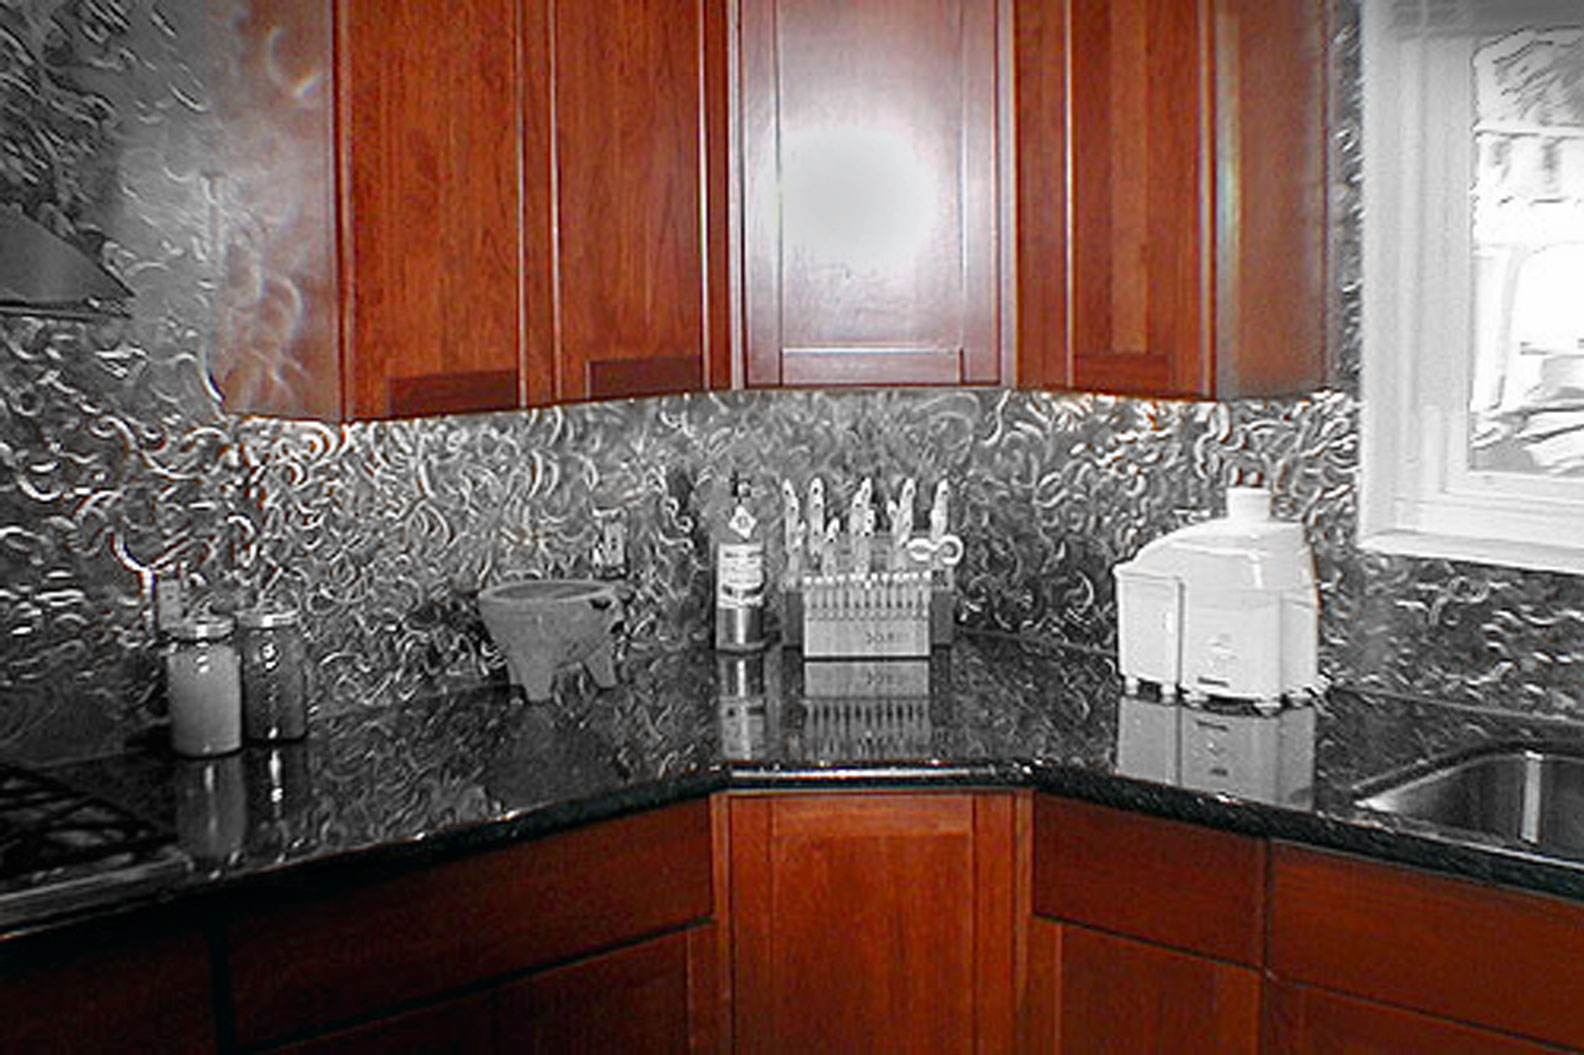 Custom-Fabricated Wall Panels